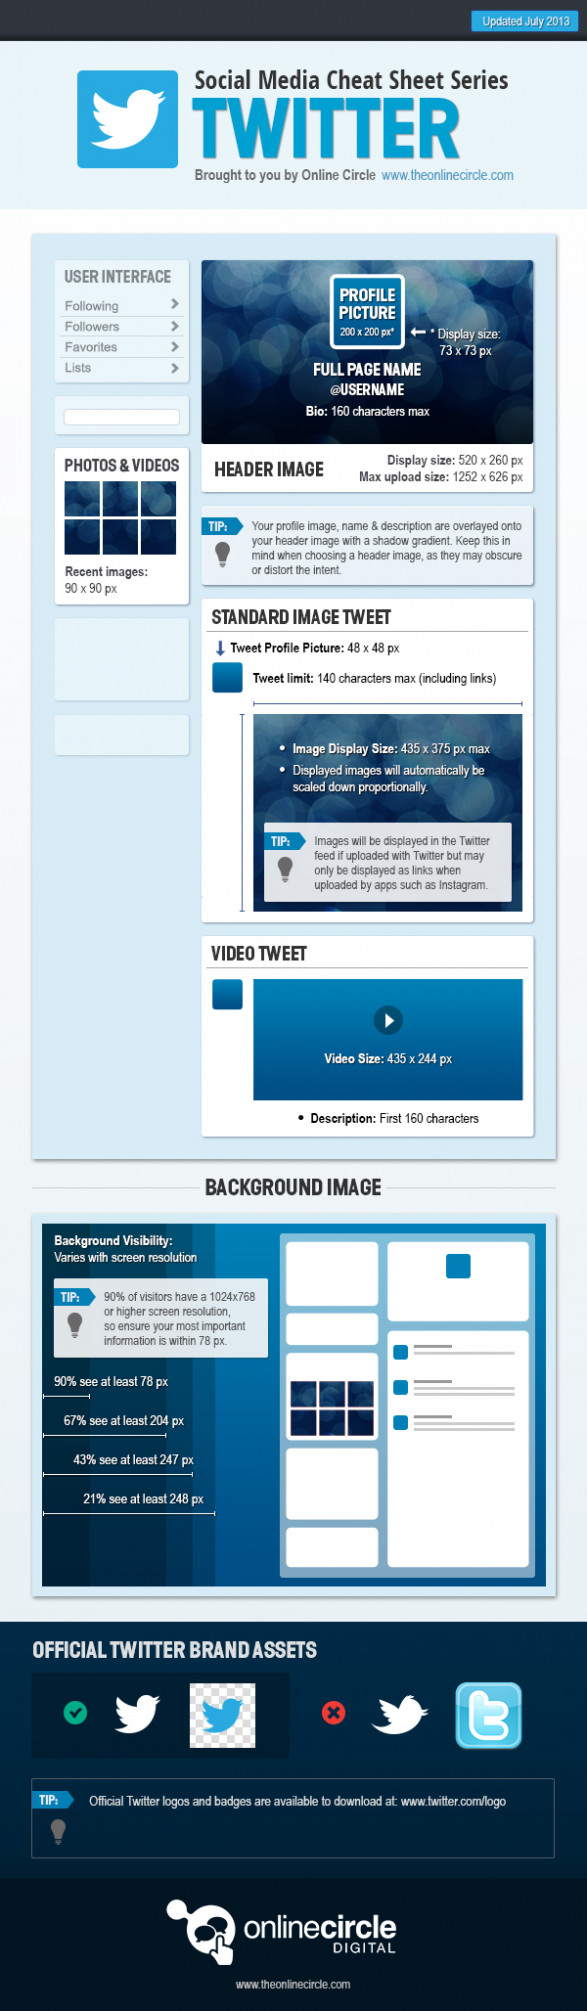 Twitter Sizes and Dimensions Cheat Sheet 2013 | The Online Circle via See You Behind the Lens